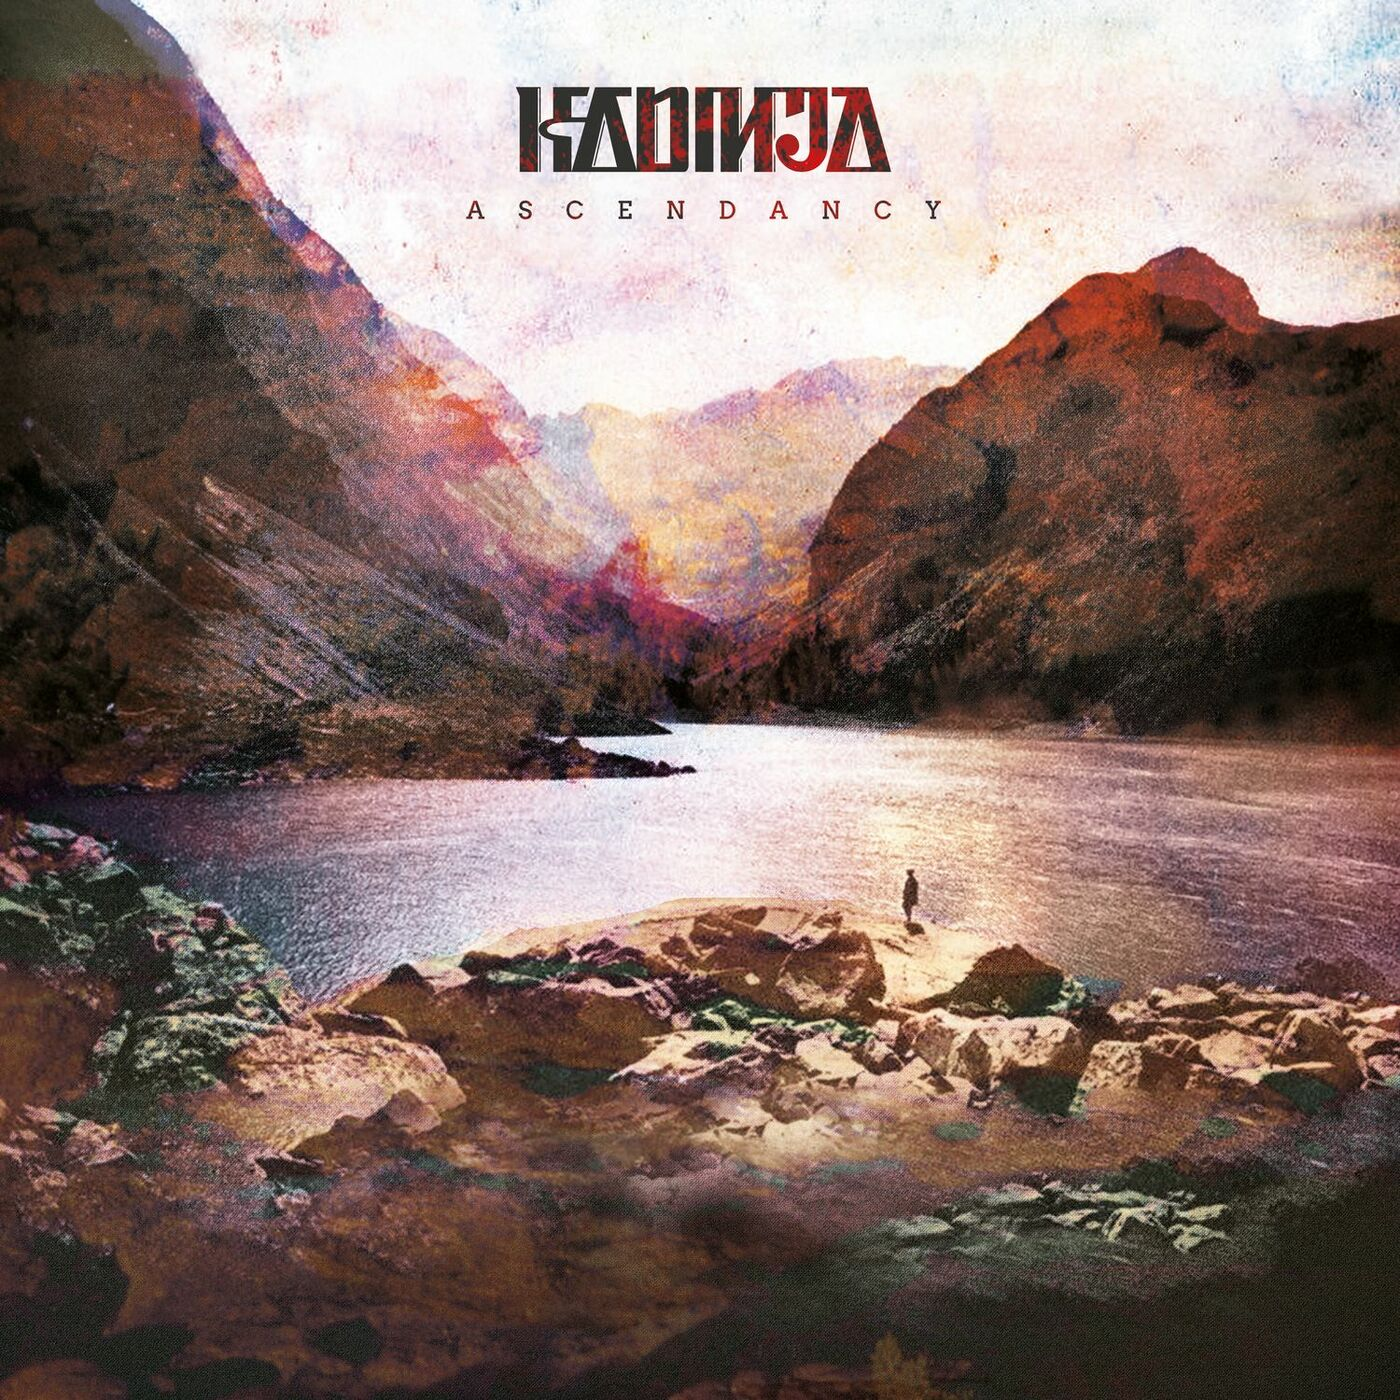 Kadinja - 'Til the Ground Disappears [single] (2017)